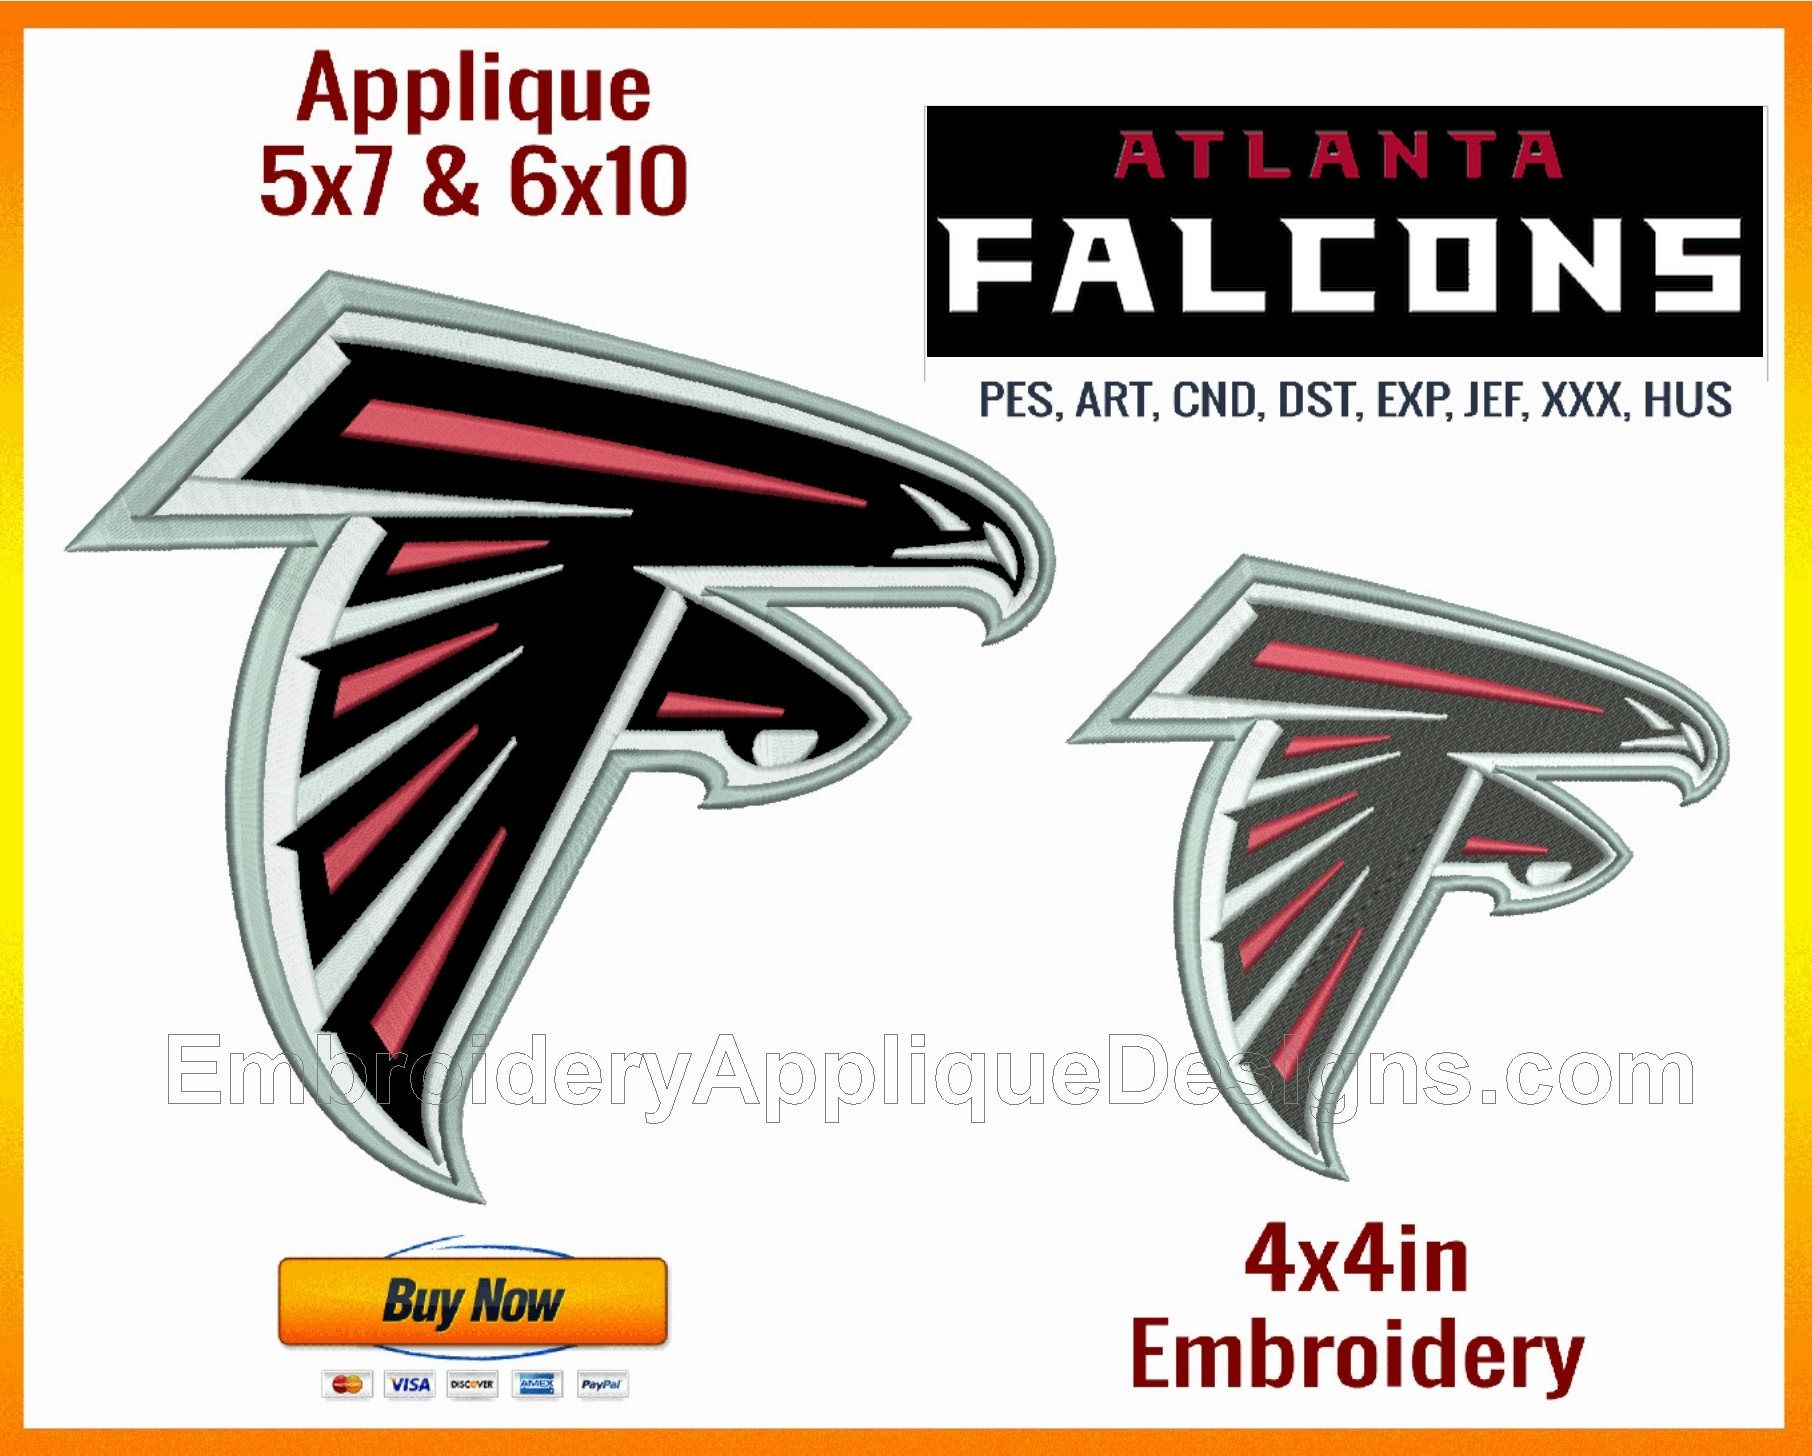 Atlanta Falcons Nfl Sports Team Logo Sizes Fitting 4x4in 5x7in And 6x10in Hoops Only On Embroidery Stock Designs Sports Team Logos Logos Hobbies For Men